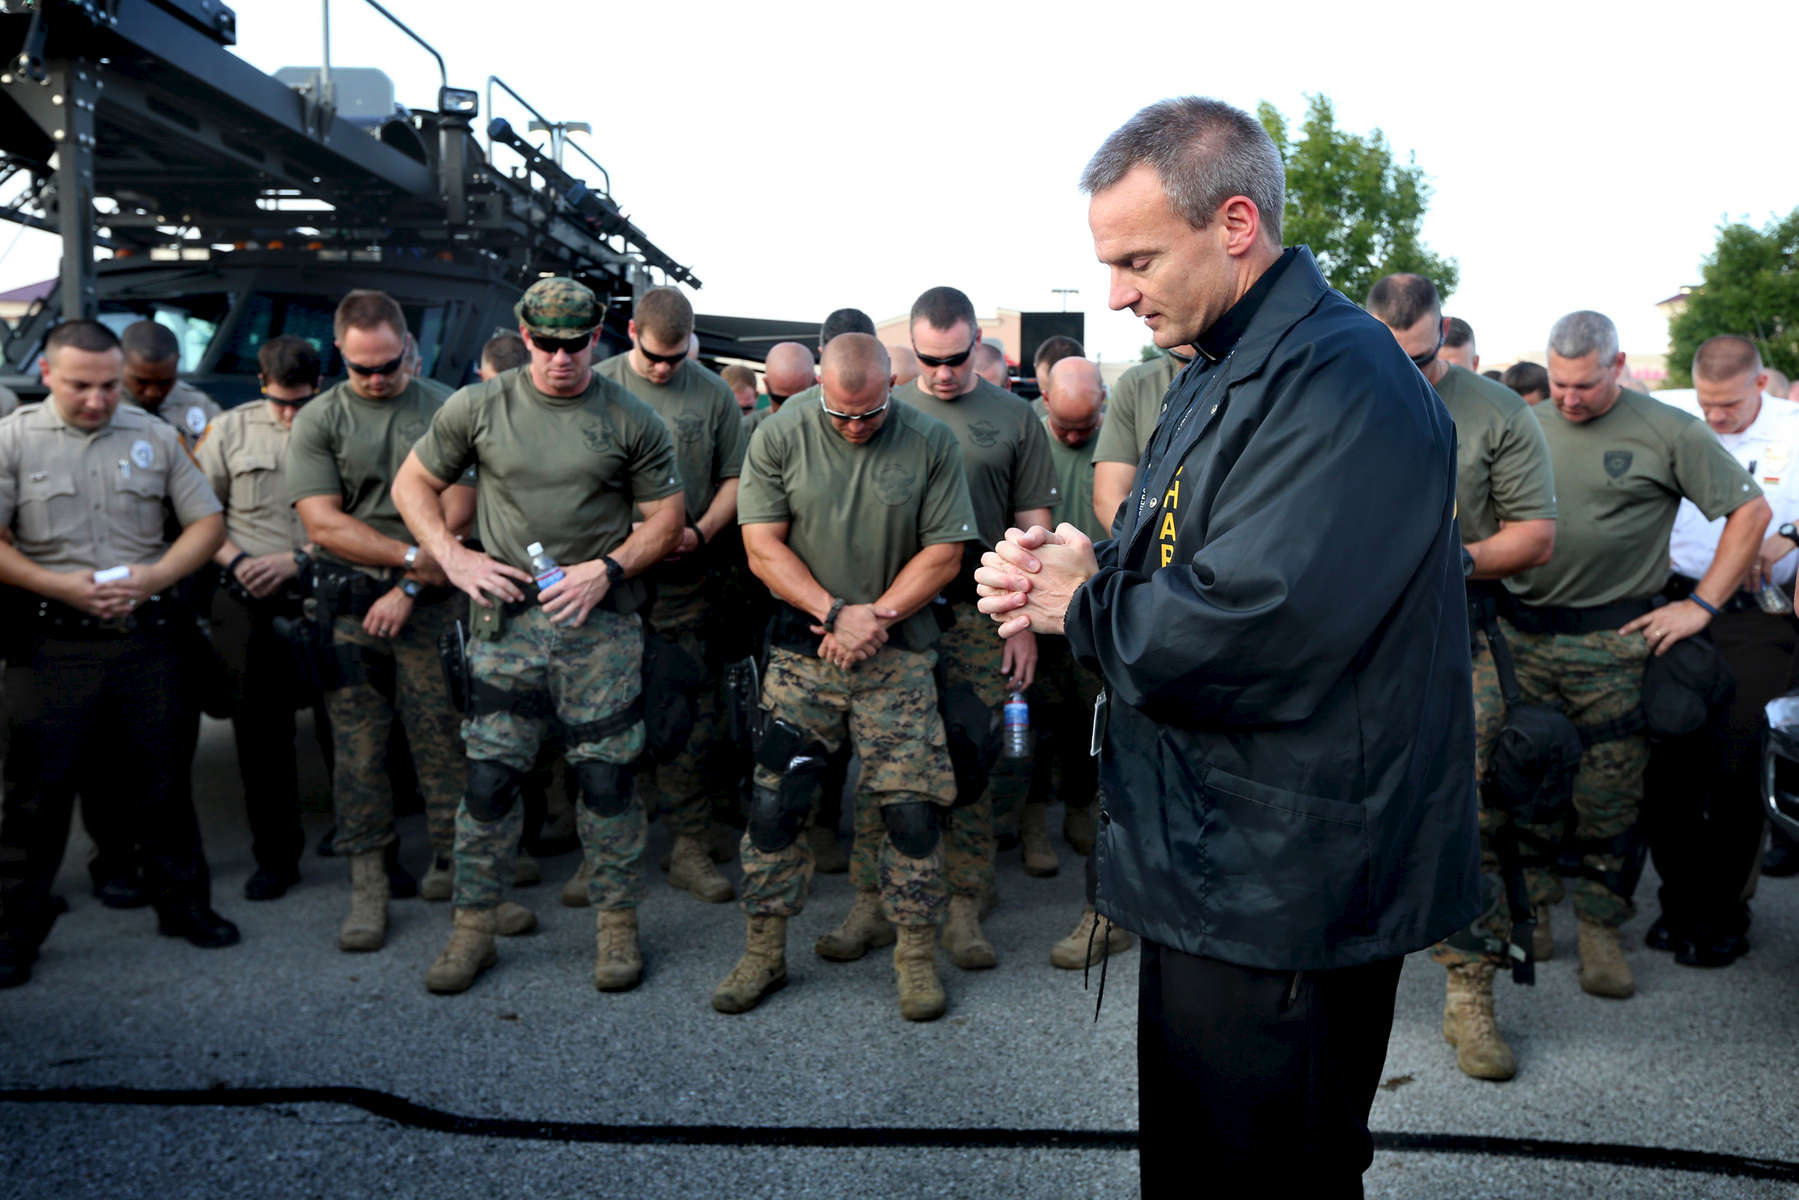 Reverend Michael Boehm says a prayer during roll call with police officers and St. Louis County Police tactical team as they make a plan for how to deal with crowds of people along W. Florissant Road in Ferguson on Monday, Aug. 18, 2014.Photo By David Carson, dcarson@post-dispatch.com